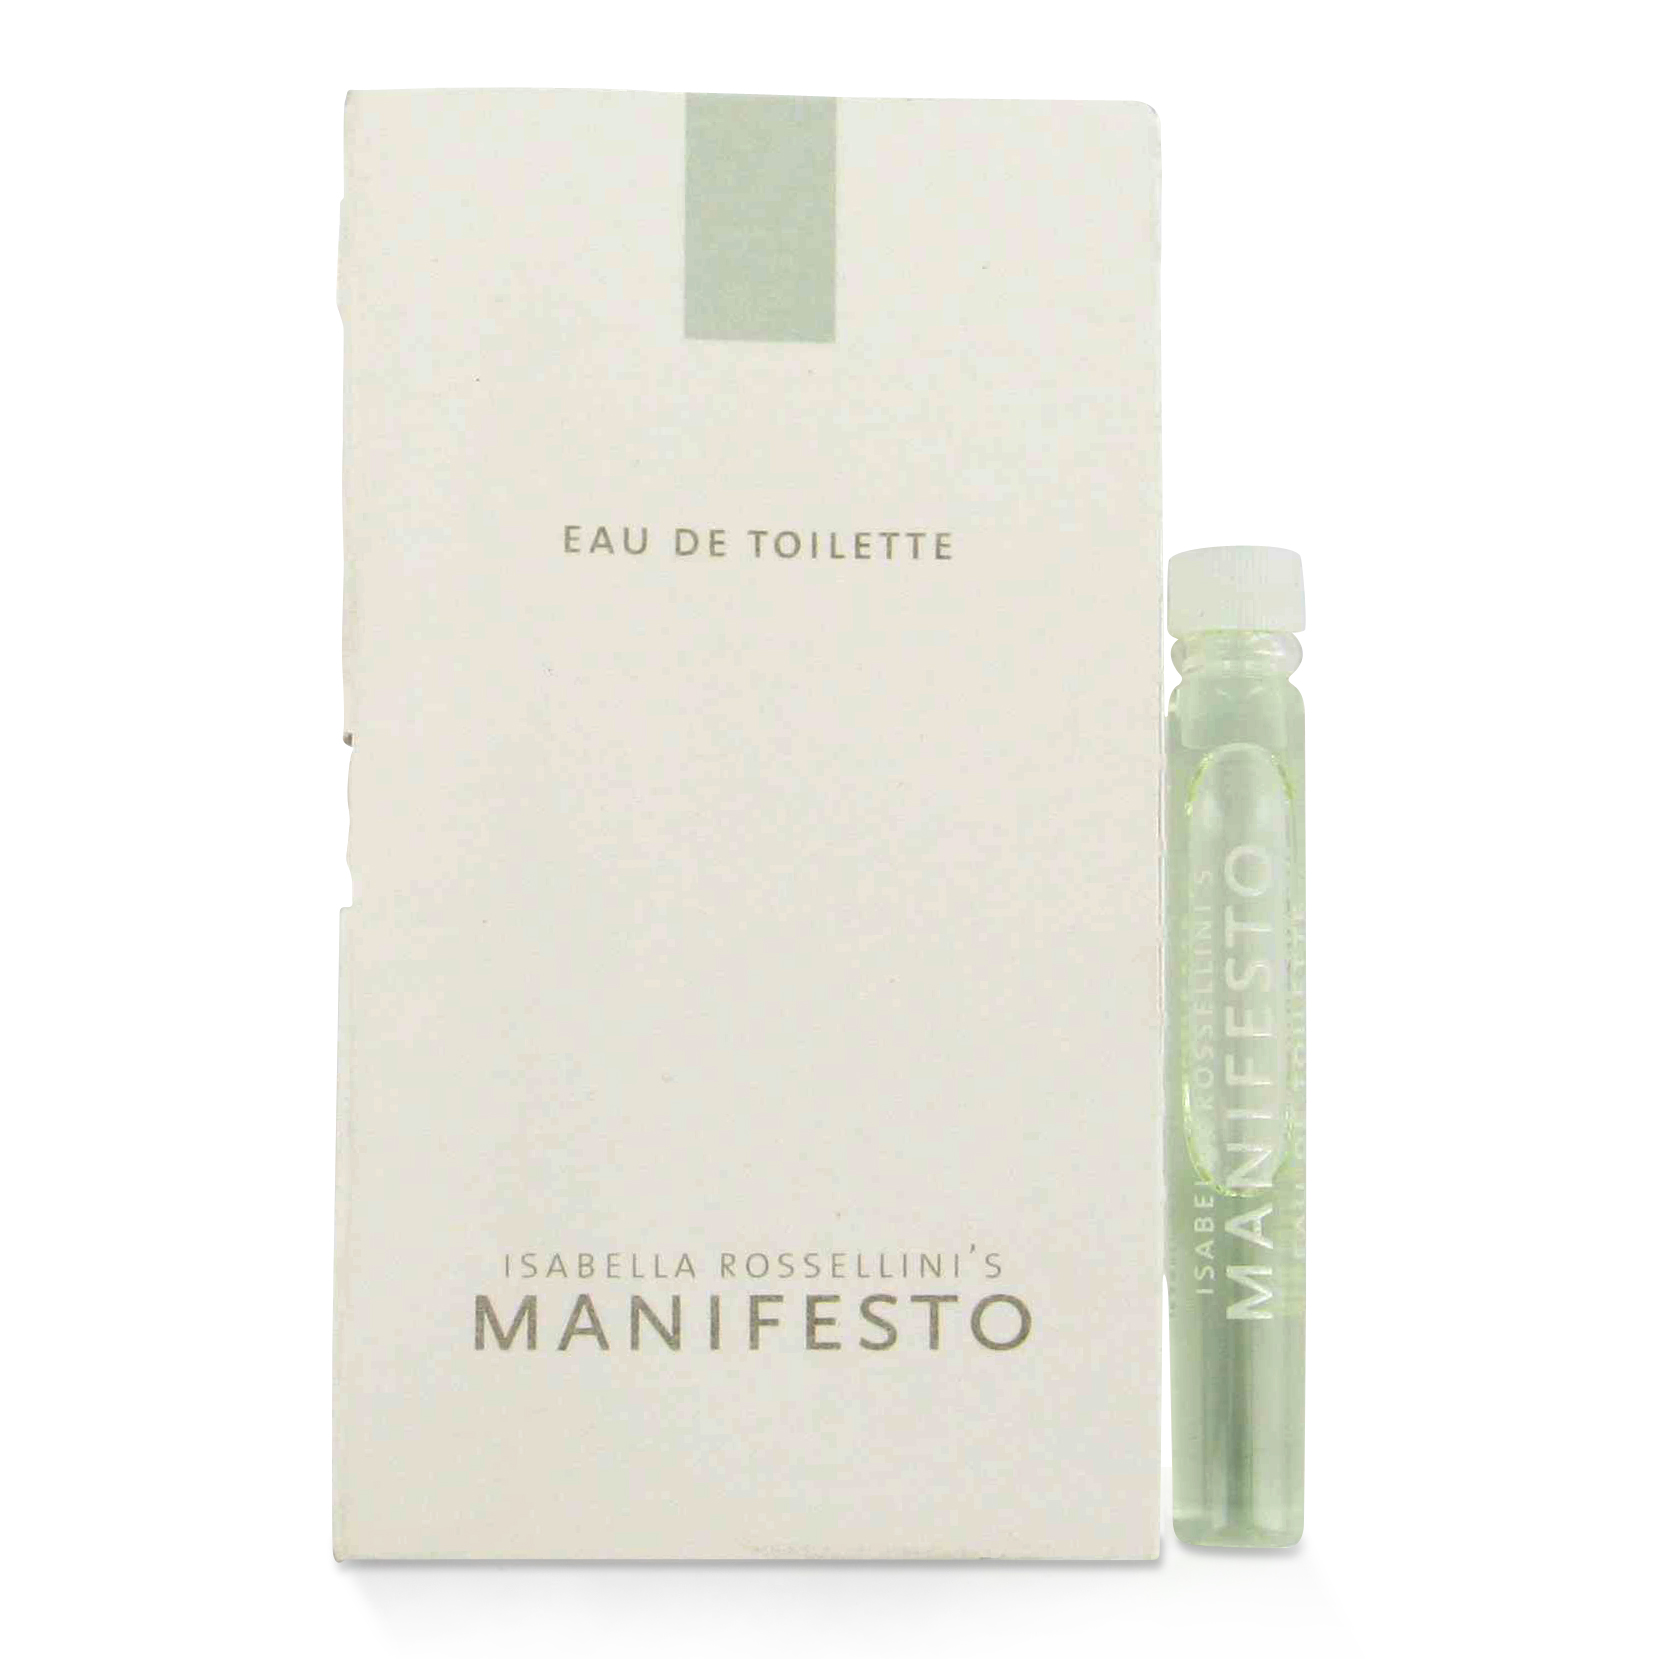 Manifesto Rossellini By Isabella Rossellini Manifesto Rosellini By Isabella Rosellini For Women Vial (Sample) .04 Oz at Sears.com